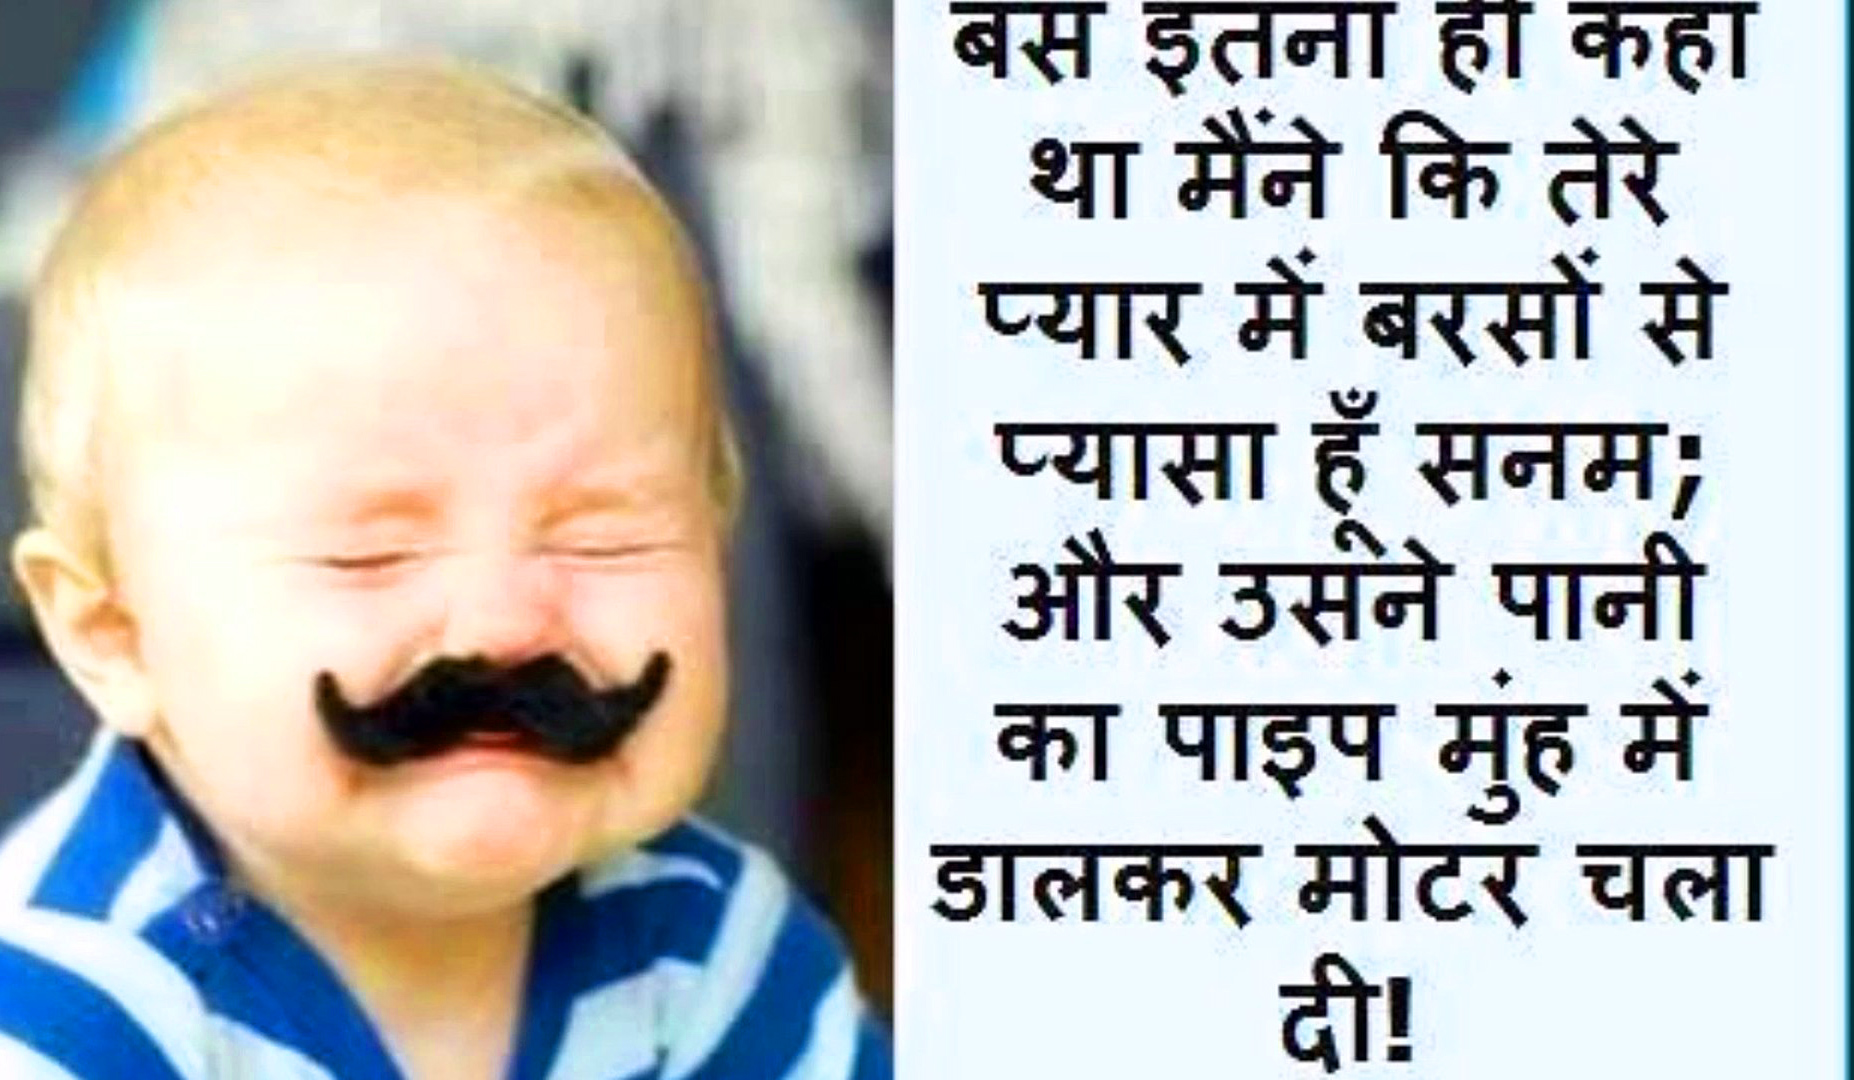 Hindi Jokes Chutkule shayari Images Wallpaper pics for Facebook